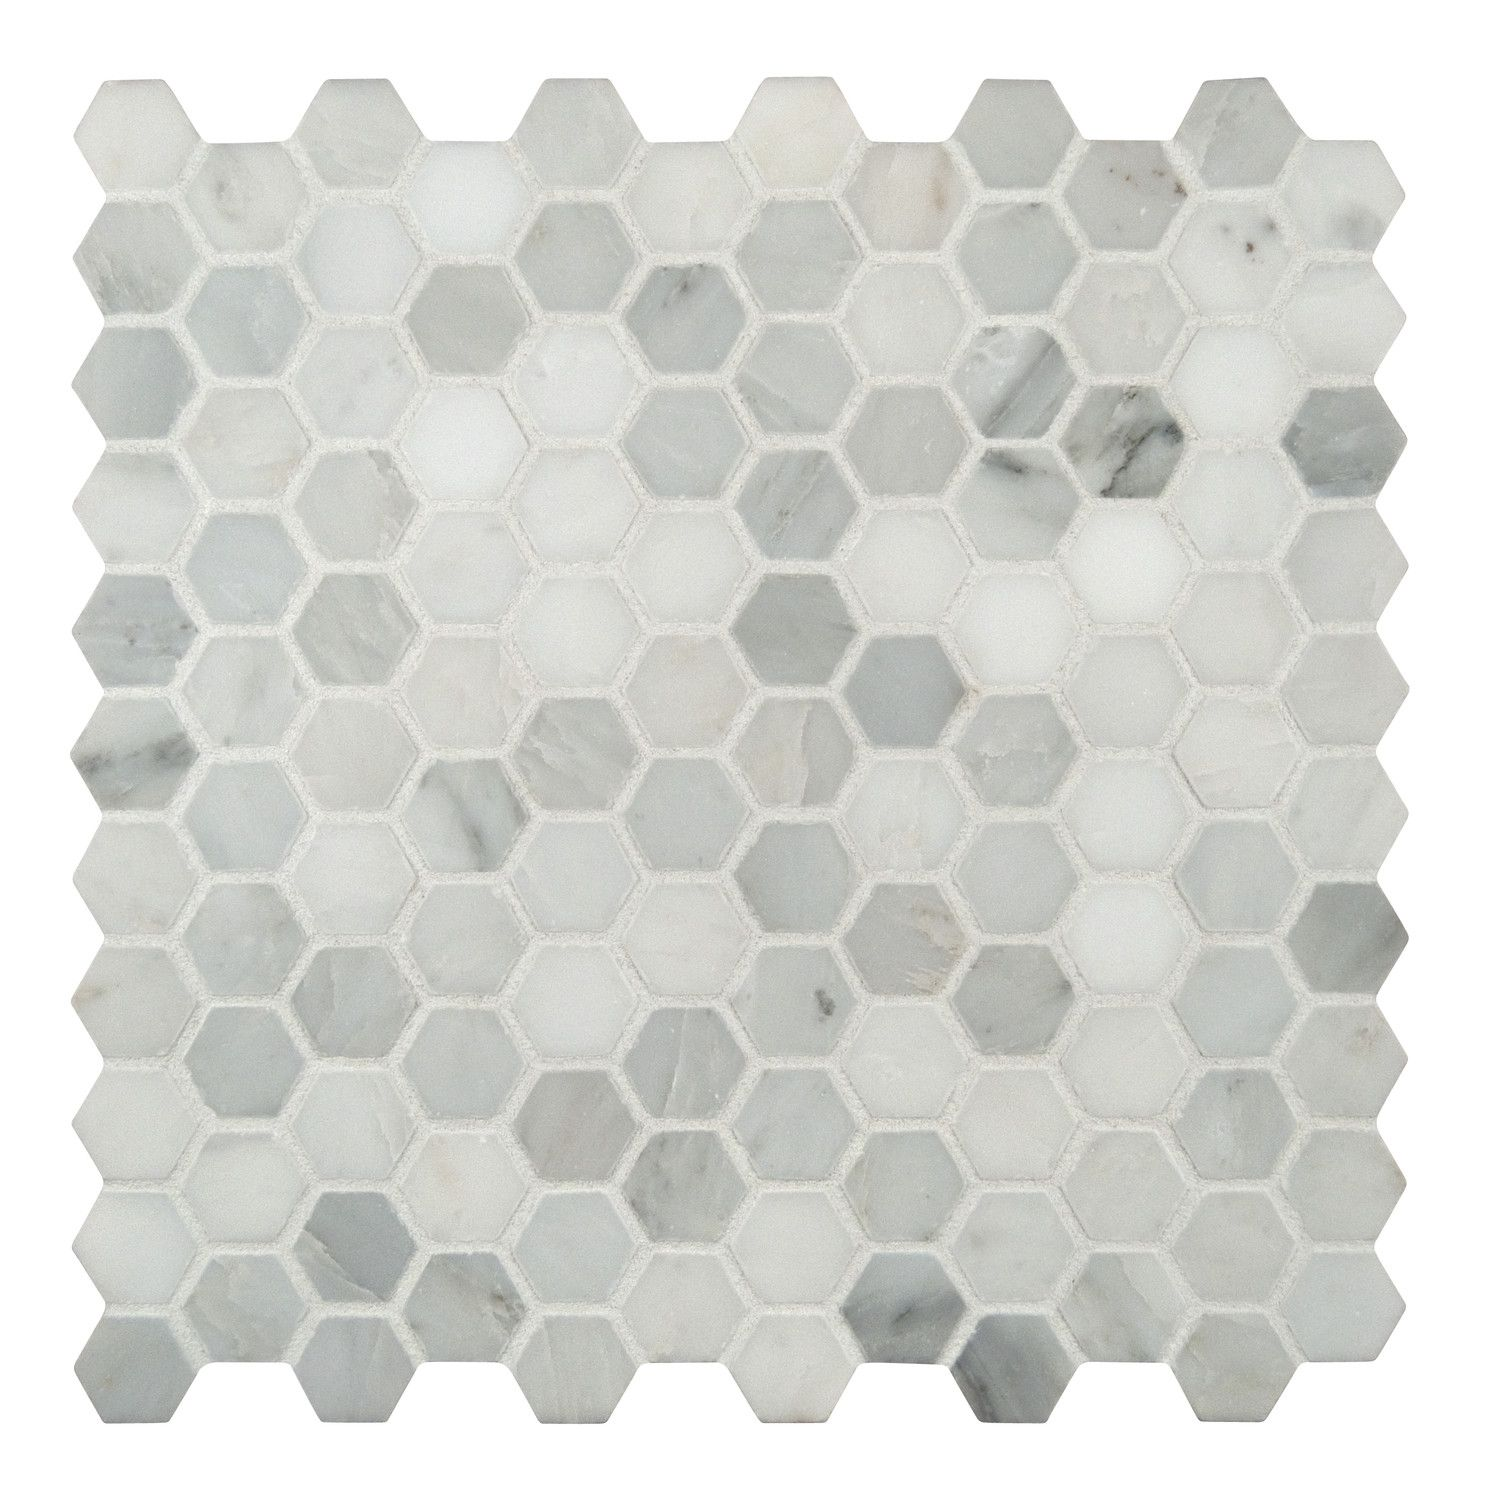 Ms international 1 x 1 marble honed mosaic tile in arabescato ms international 1 x 1 marble honed mosaic tile in arabescato carrara doublecrazyfo Gallery